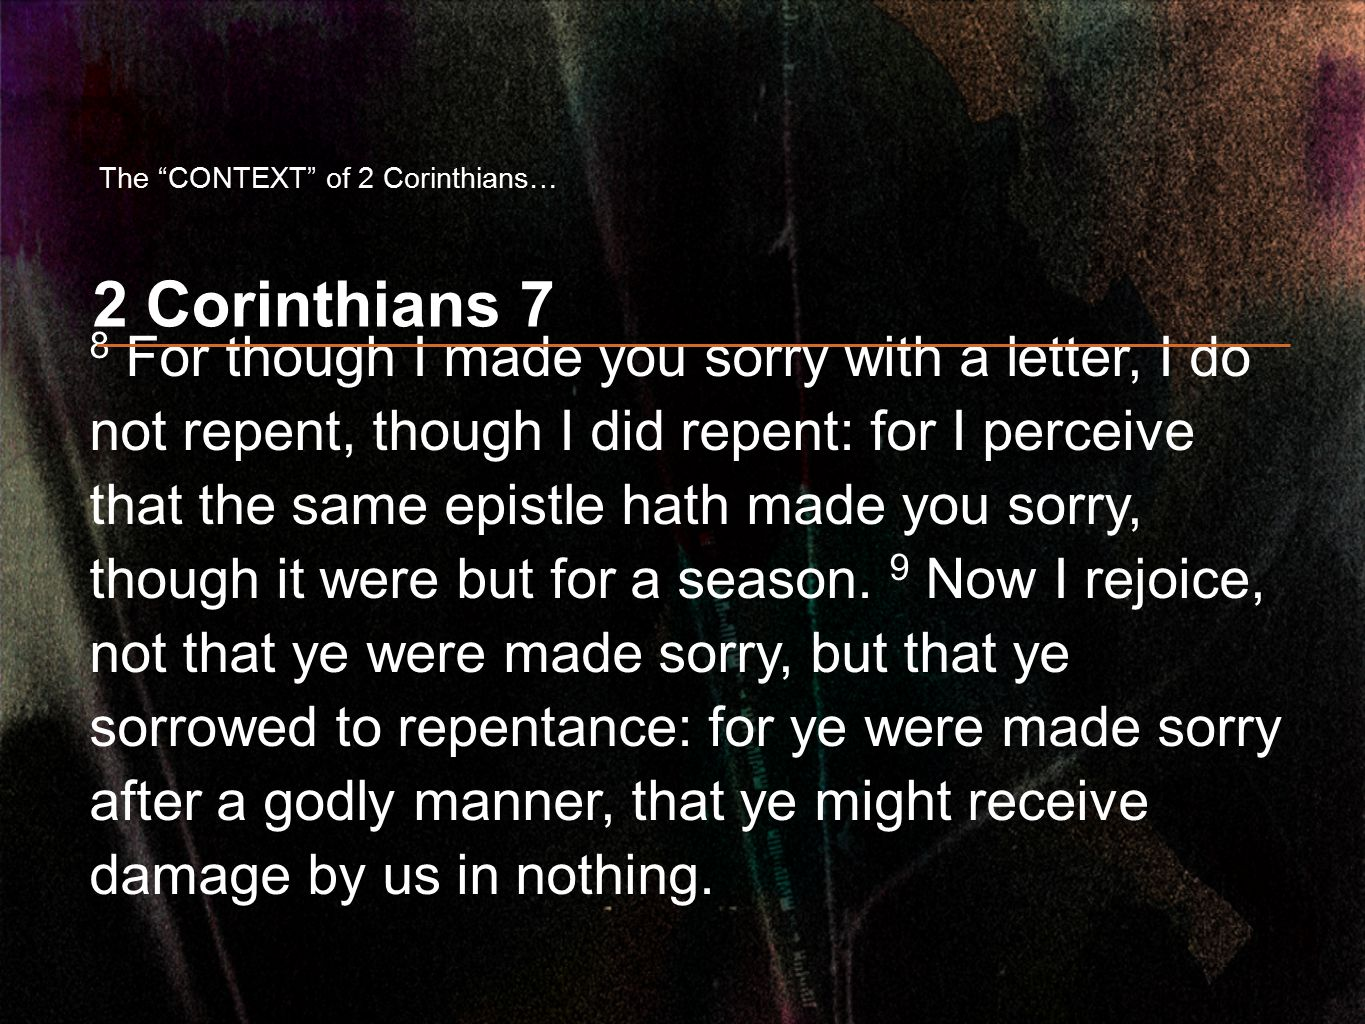 2 Corinthians 7 8 For though I made you sorry with a letter, I do not repent, though I did repent: for I perceive that the same epistle hath made you sorry, though it were but for a season.